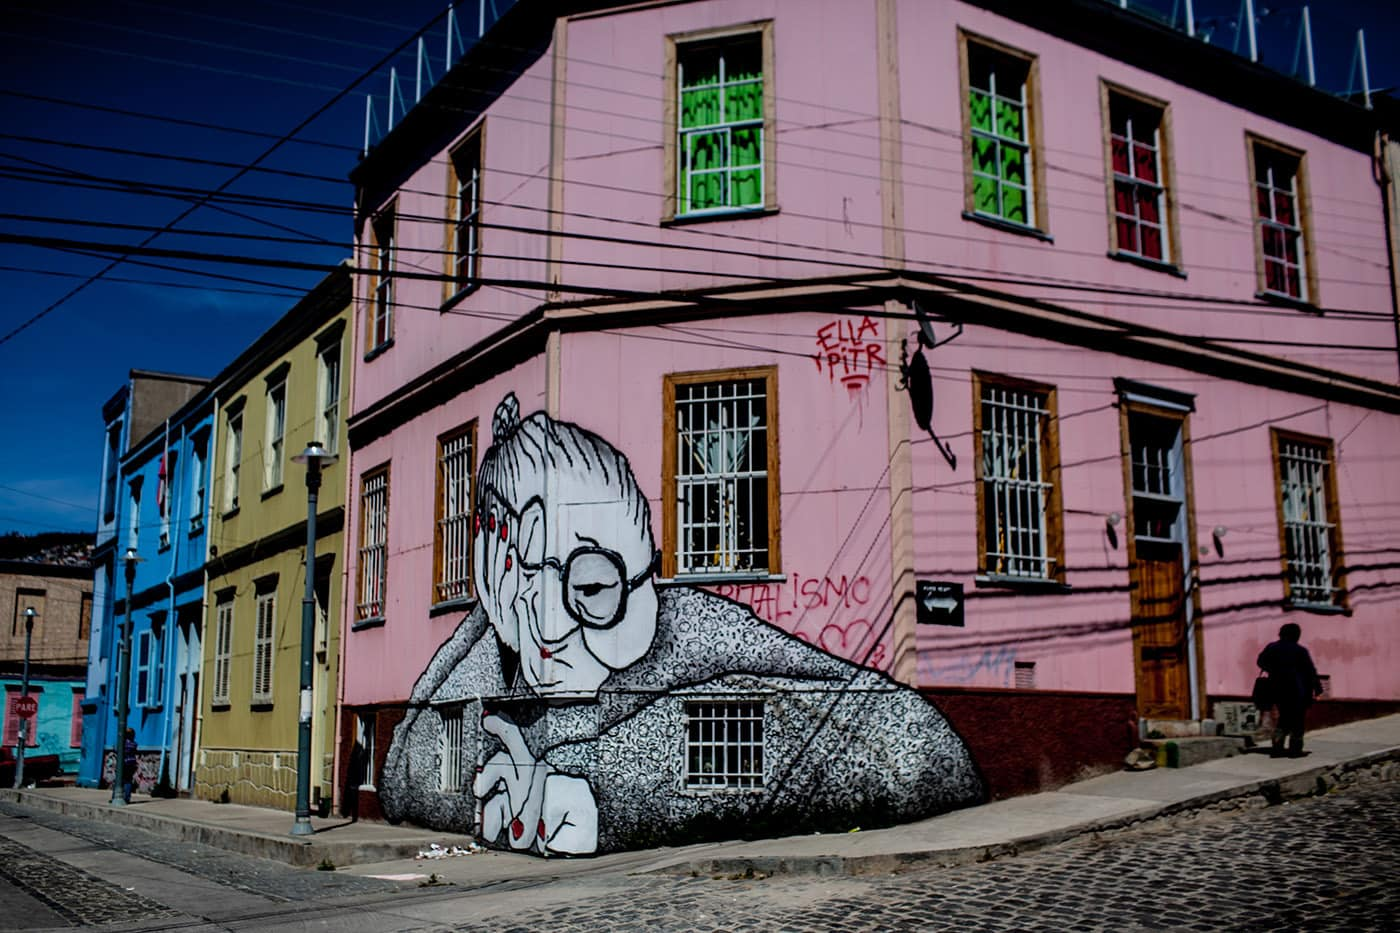 Best Street Art in Valparaiso, Chile - old woman in glasses on a pink building